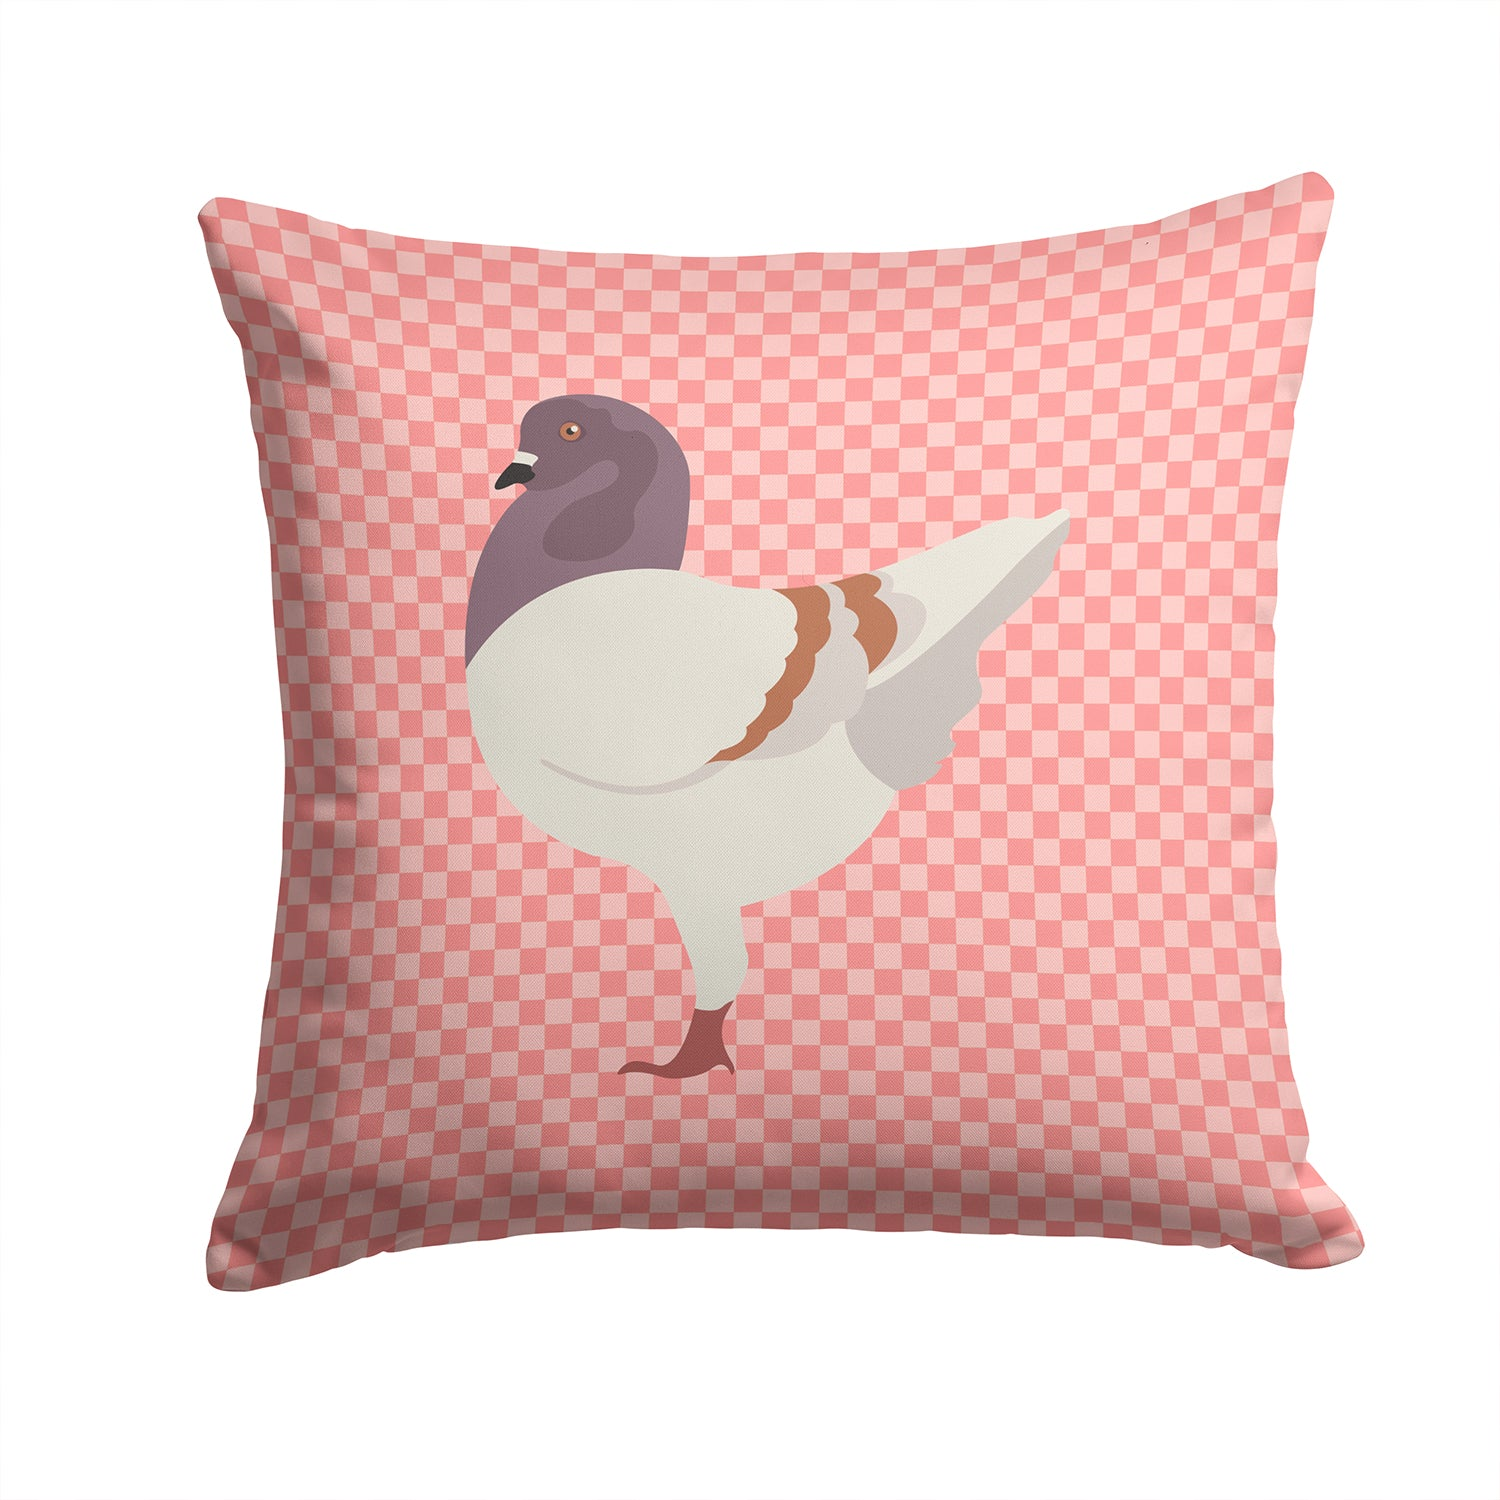 German Modena Pigeon Pink Check Fabric Decorative Pillow BB7949PW1414 by Caroline's Treasures